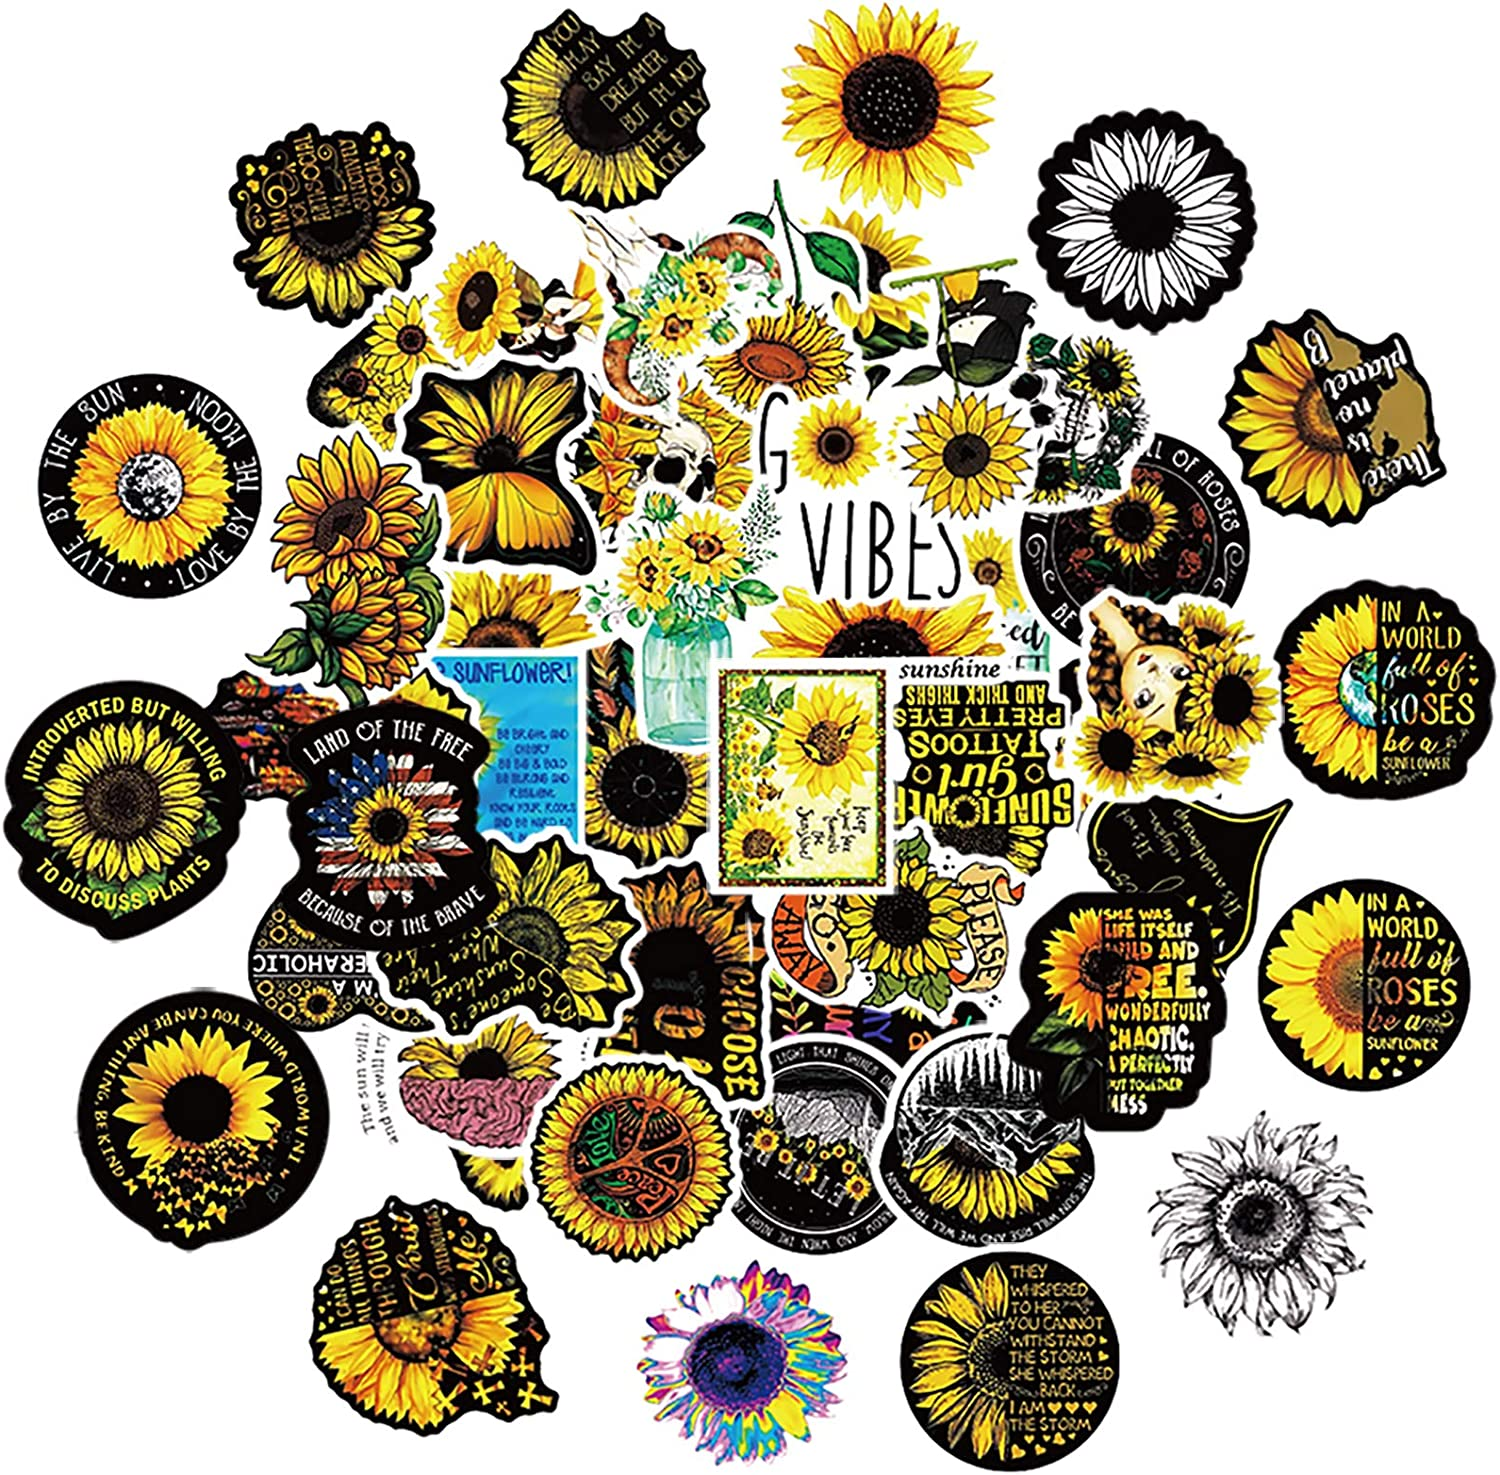 50Pcs You are My Sunshine Sunflower Vinyl Stickers Decals for Laptop Water Bottle Bike Skateboard Luggage Computer Hydro Flask Toy Phone Snowboard. DIY Decoration as Gifts for Kids Girls Teens.